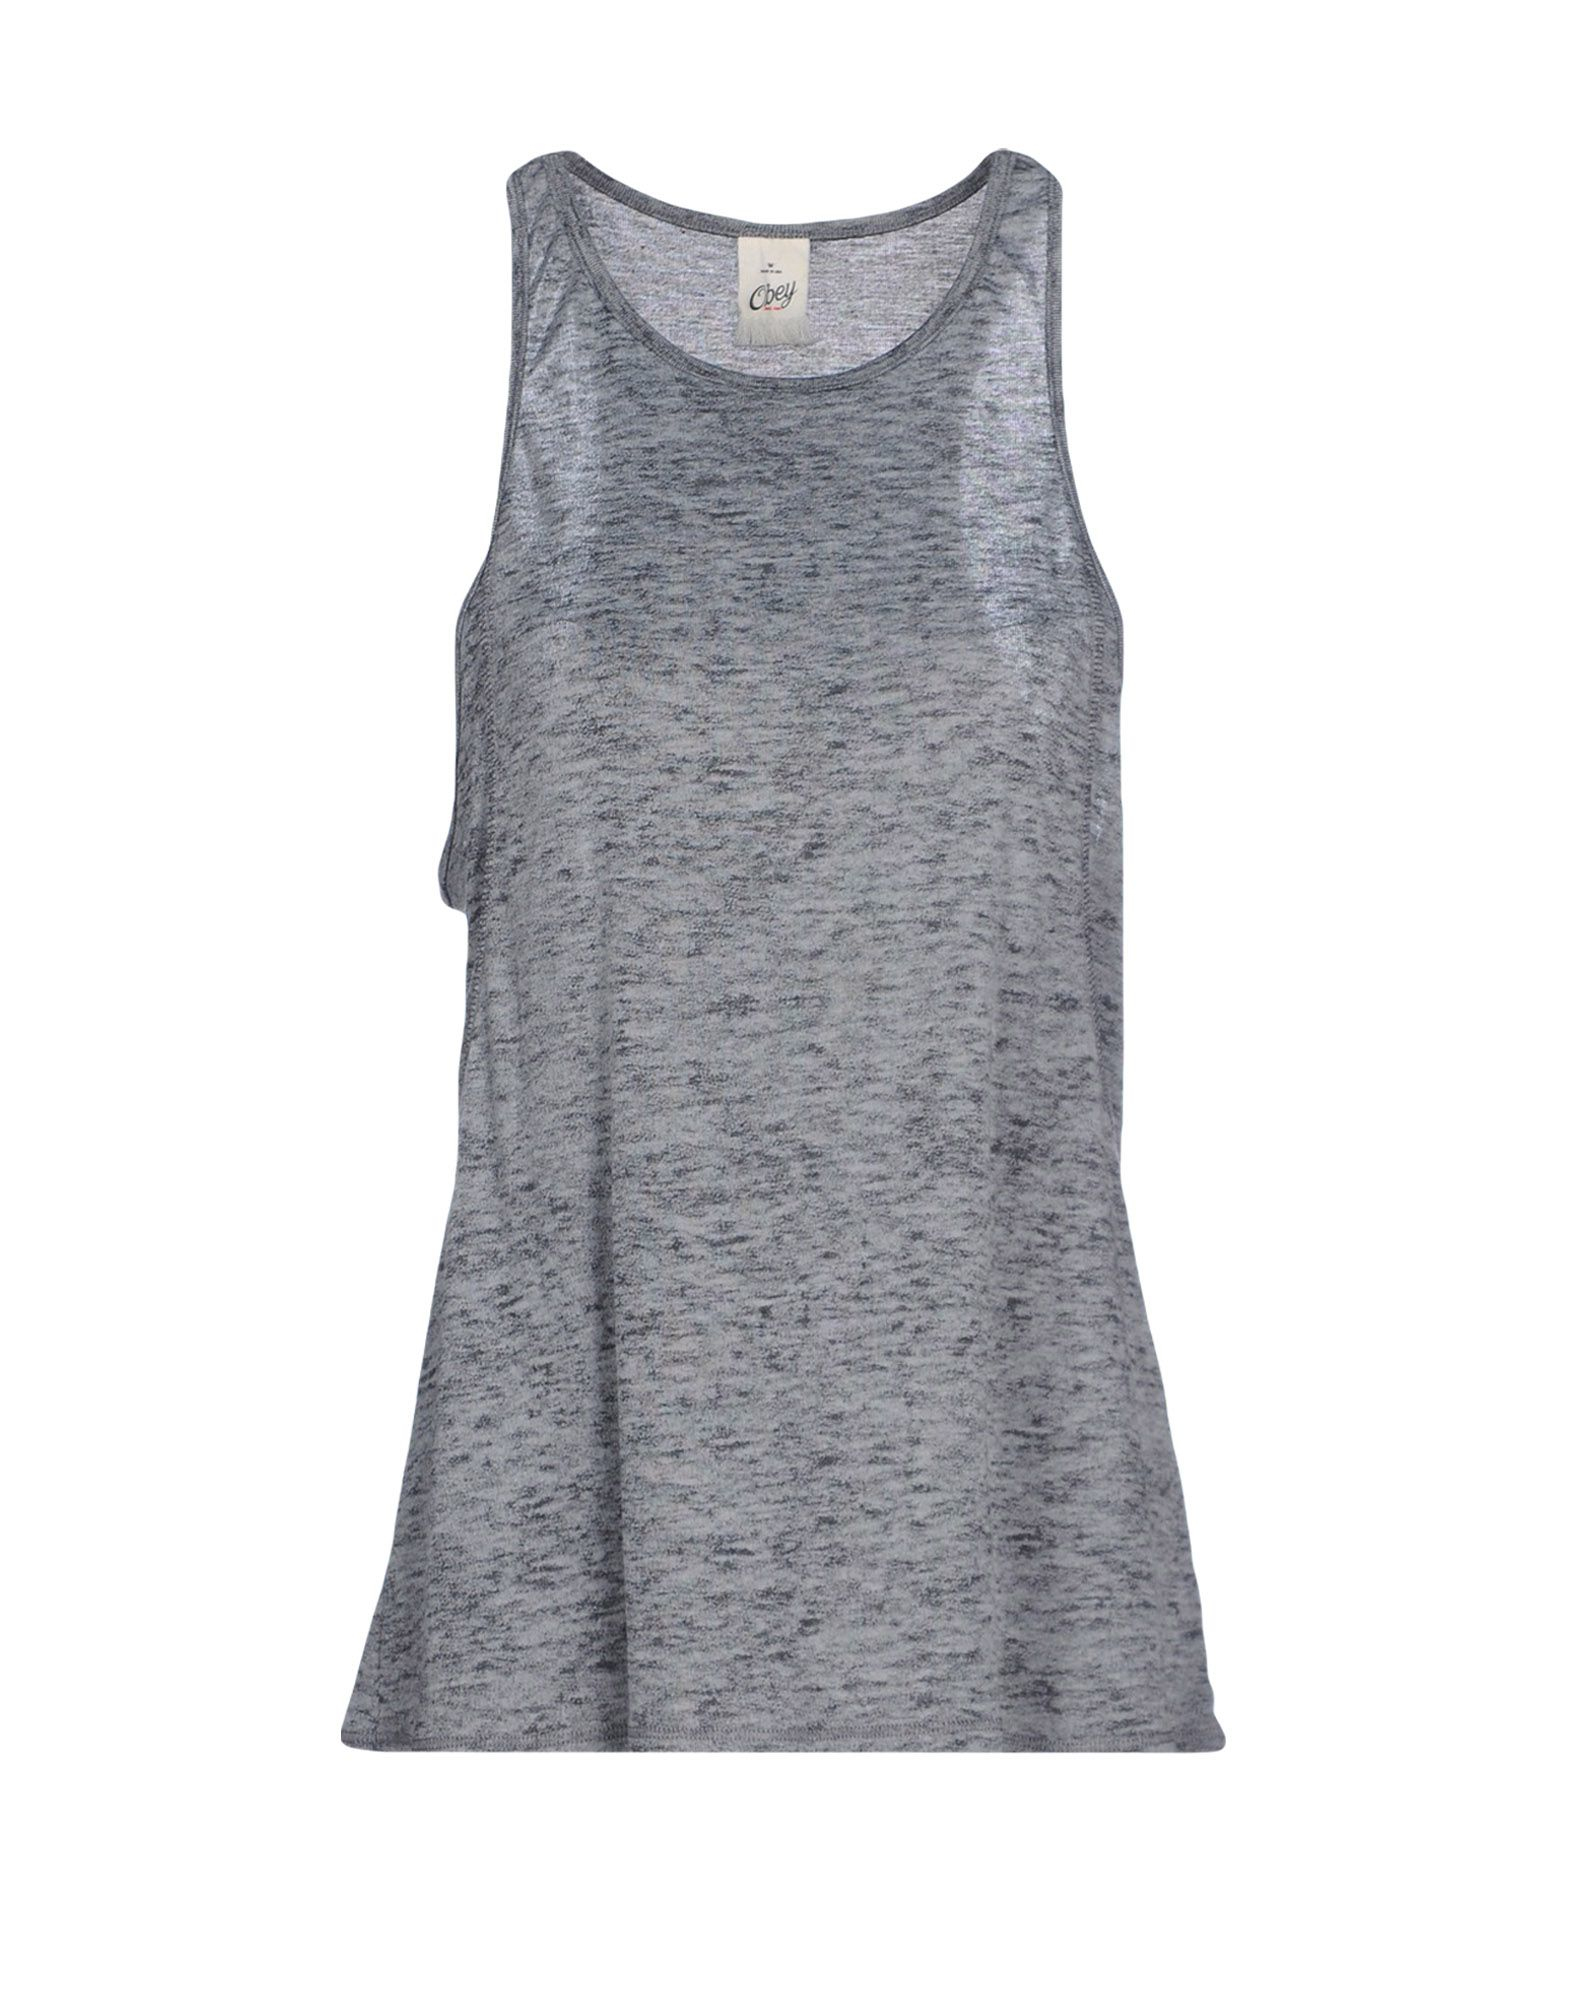 lyst obey tank top in gray. Black Bedroom Furniture Sets. Home Design Ideas